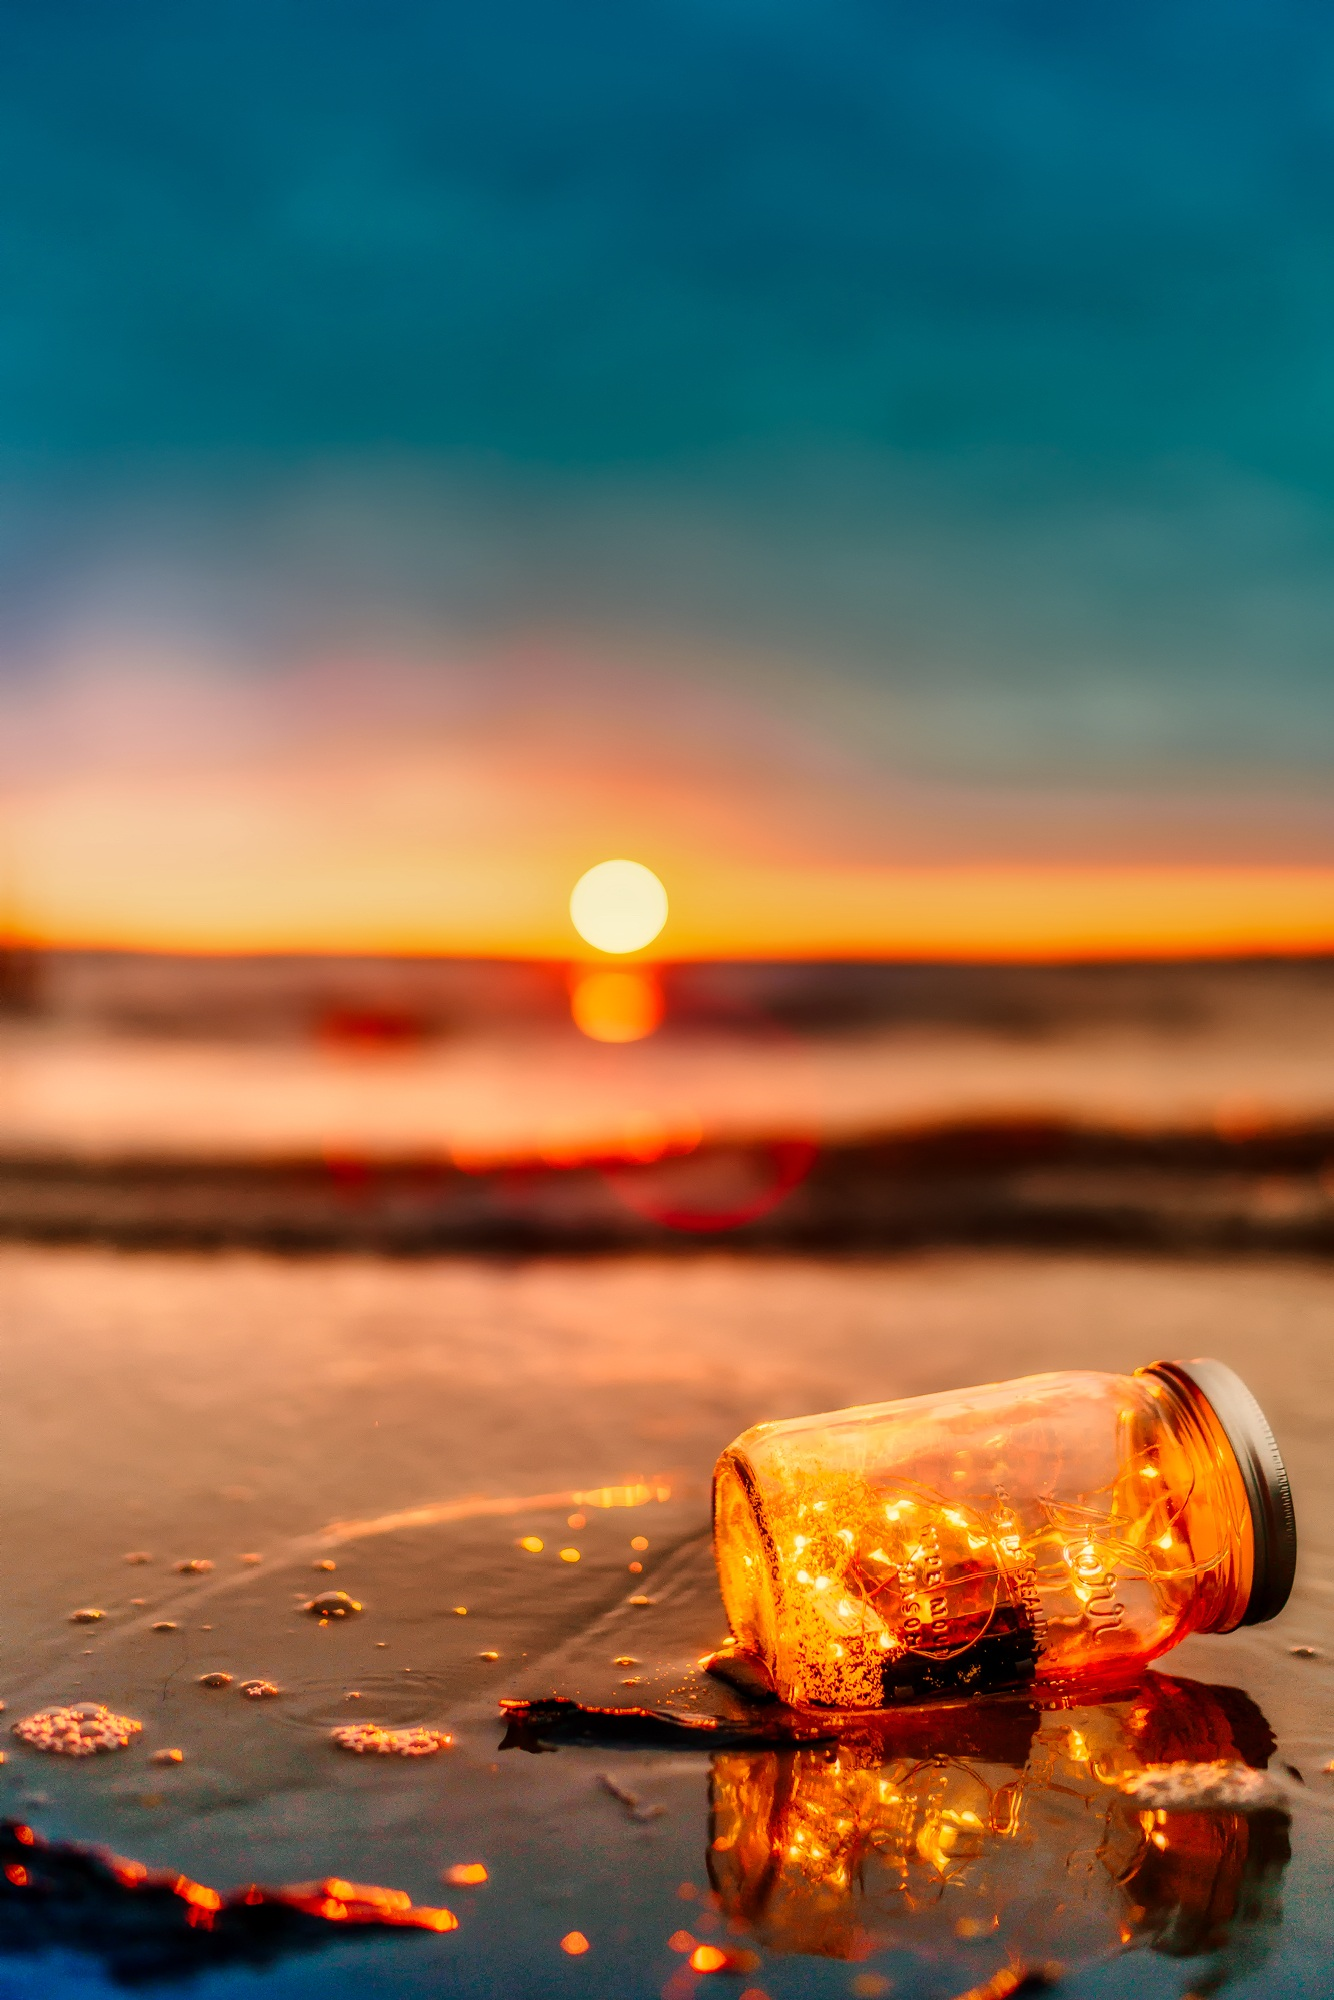 Free Photography Stock Orange Mason Jar In Body Of Water Free Stock Photo